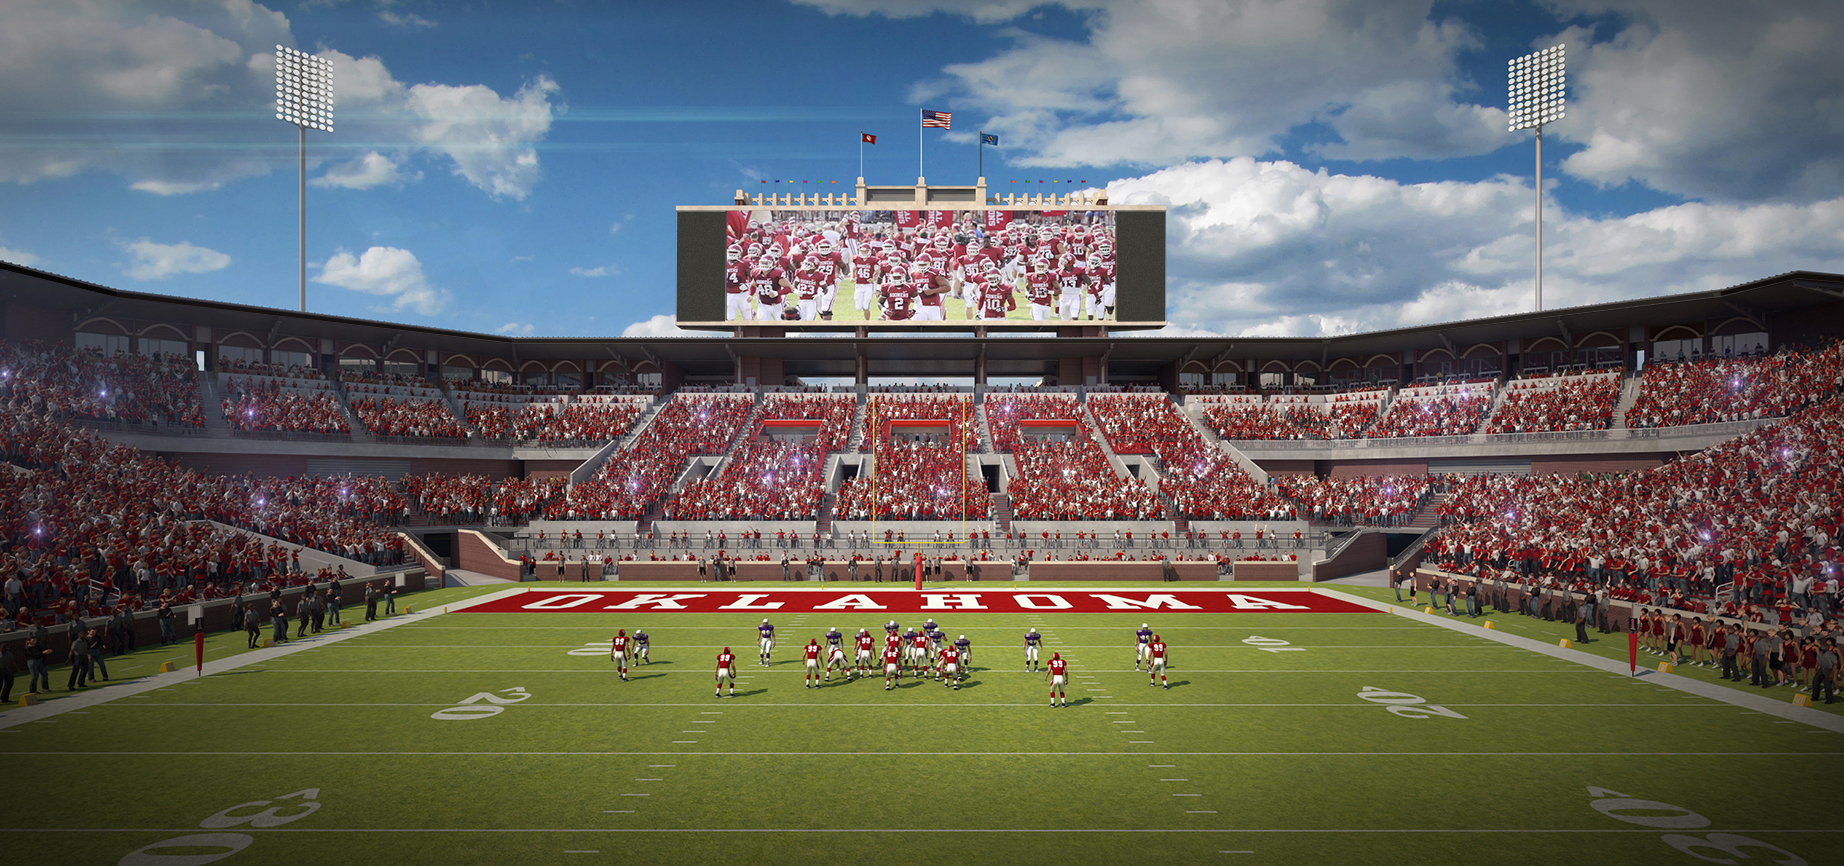 The Fall Of Troy Wallpaper Oklahoma Memorial Stadium Expansion On Schedule Football